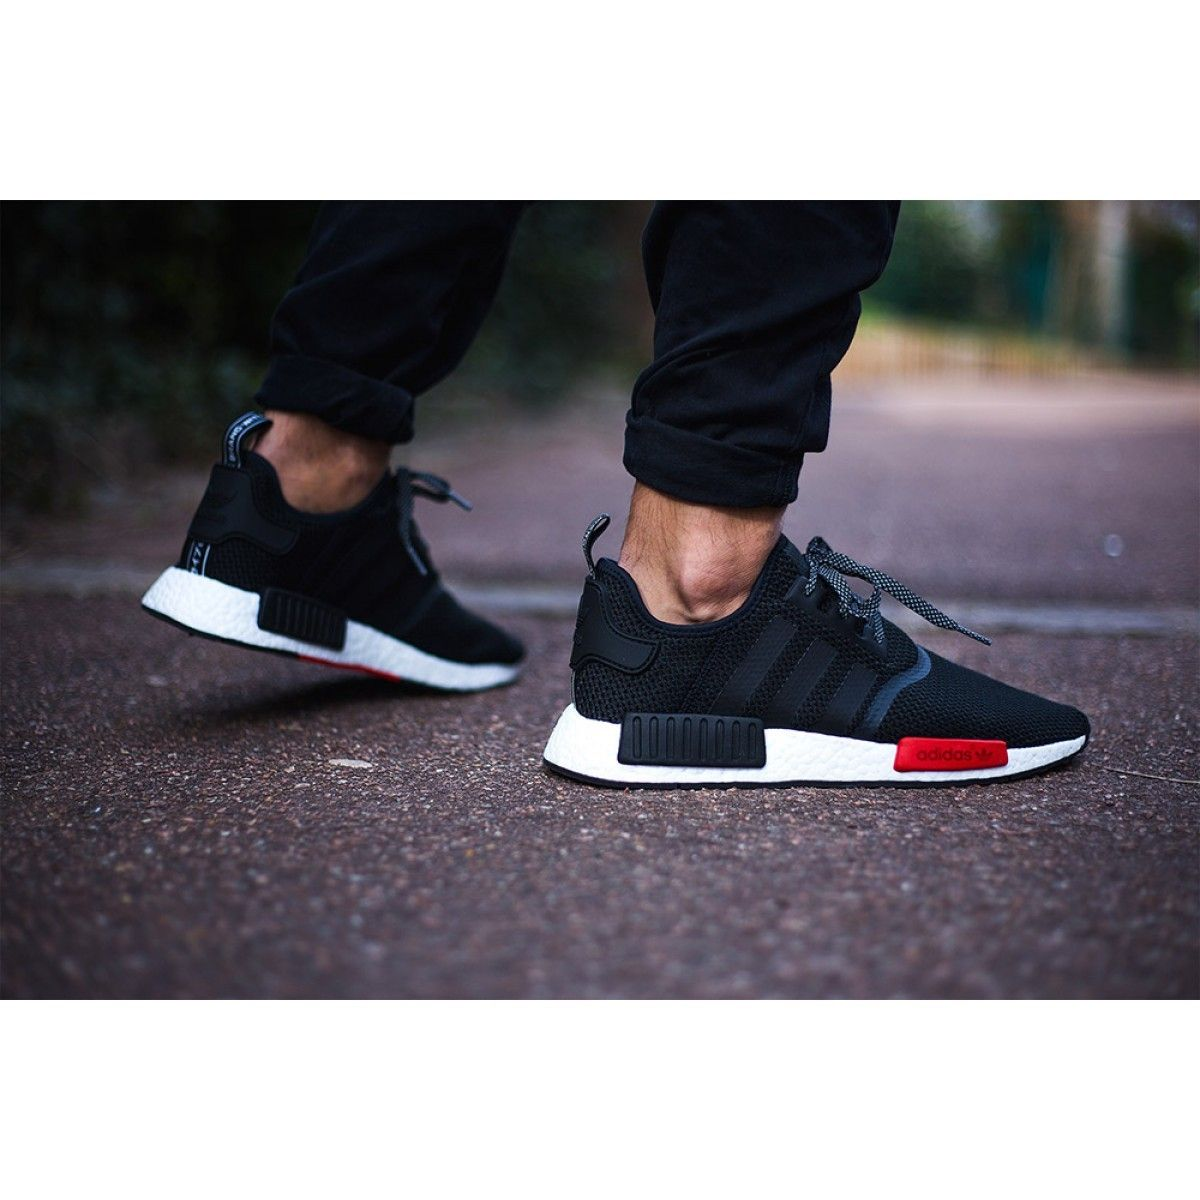 Adidas NMD R1 Footlocker Exclusive Black Red White AQ4498 7771d2d84